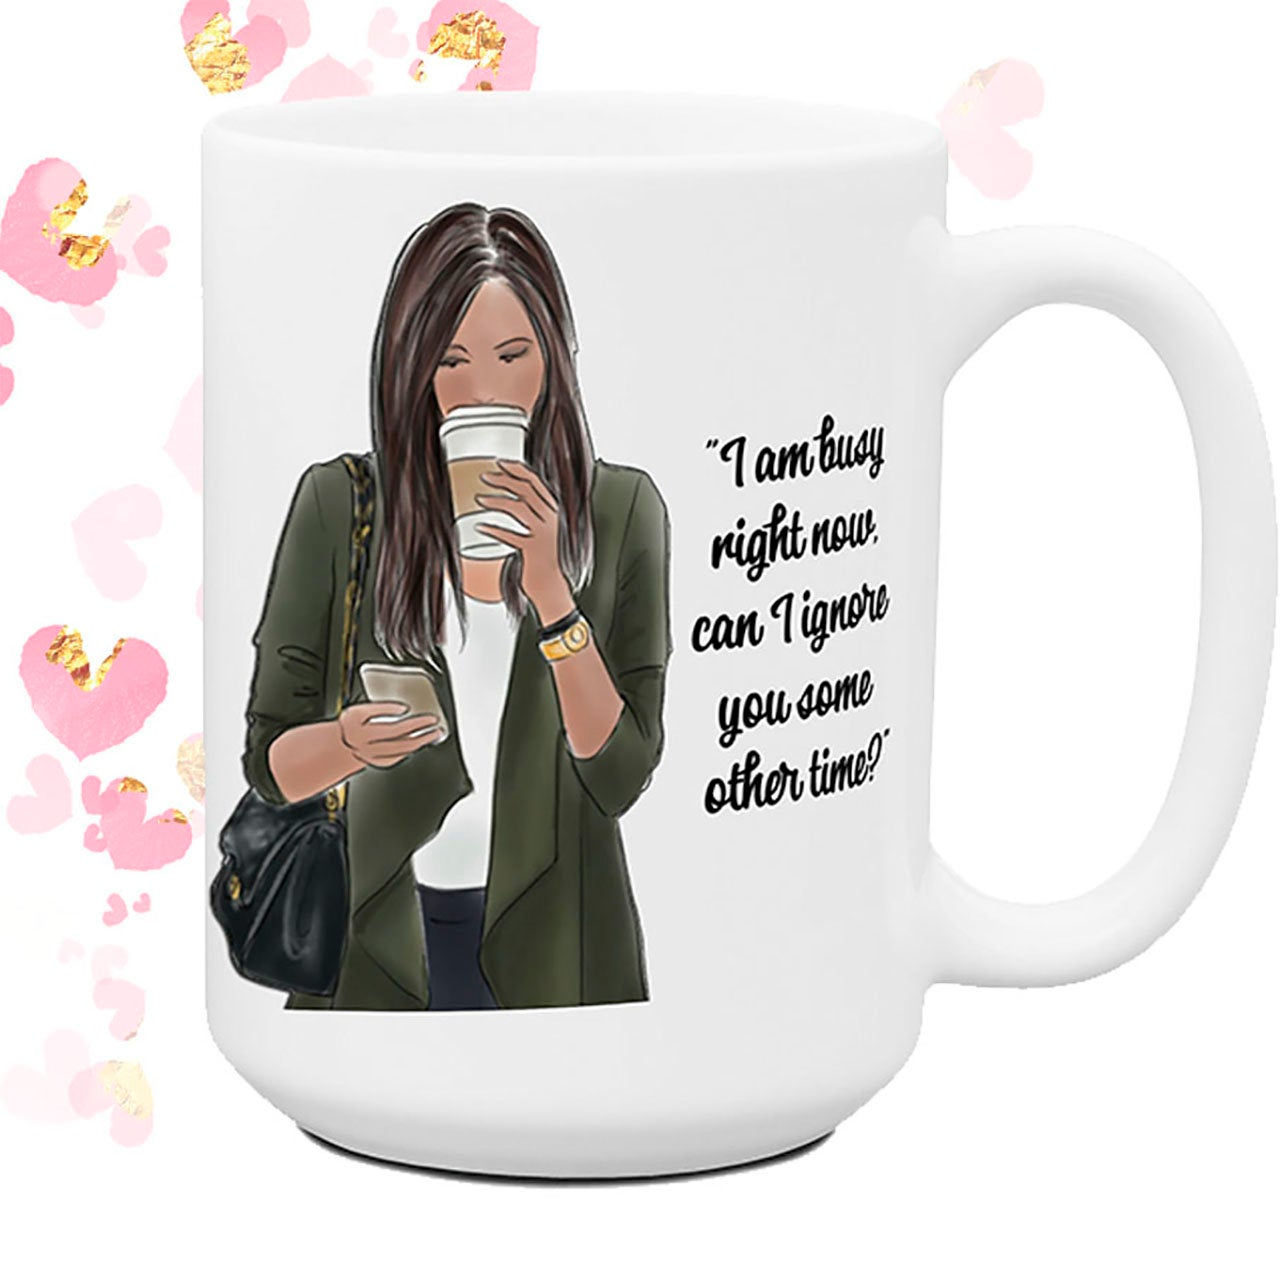 Office Humor Coffee Cup Co Worker Gift Can I Ignore You Some Other Time Gift for Her